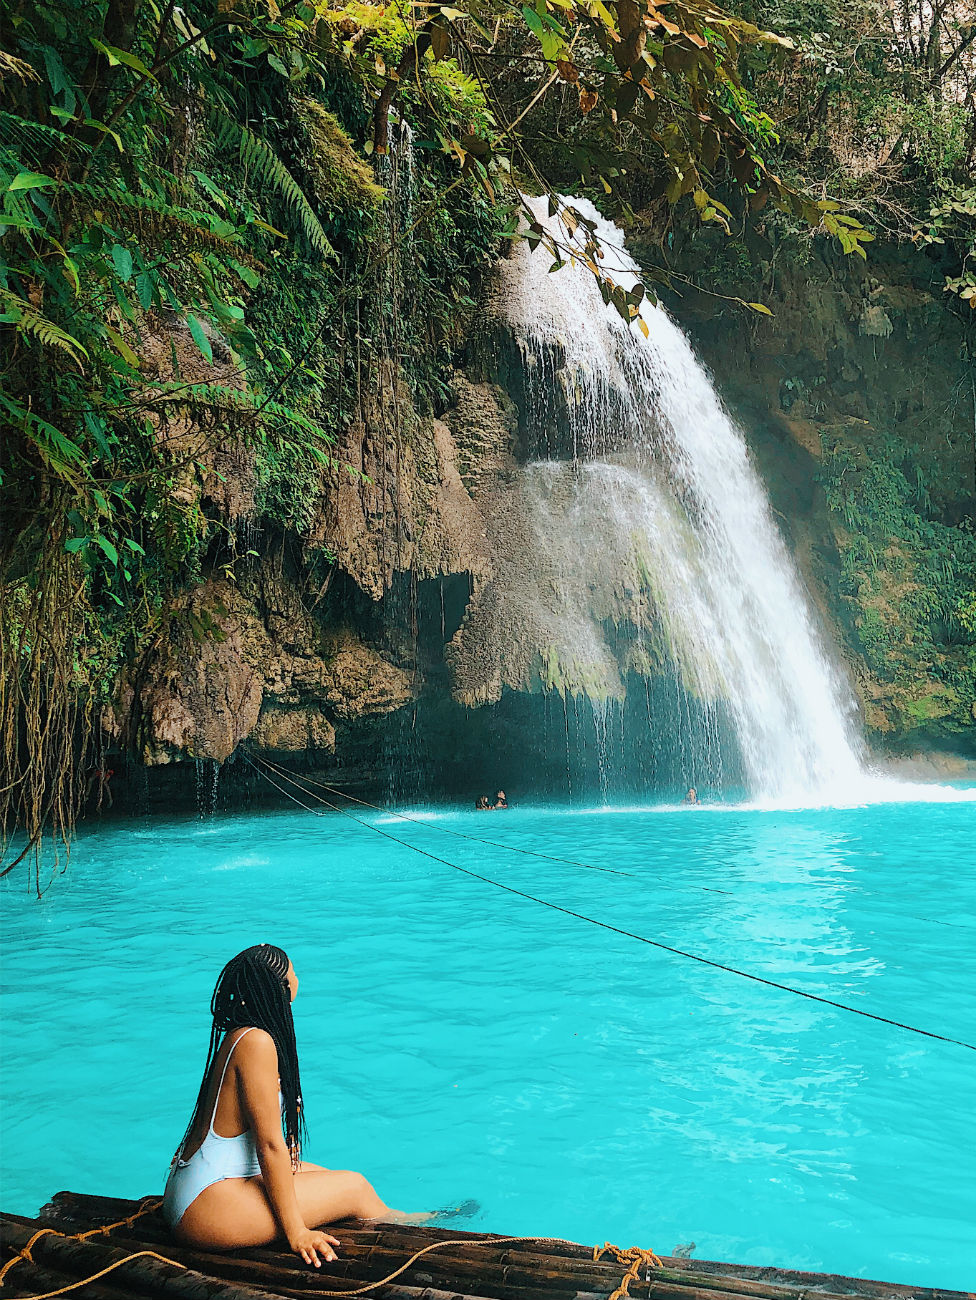 Briona Lamback sits by a waterfall in Cebu, in the Philippines.